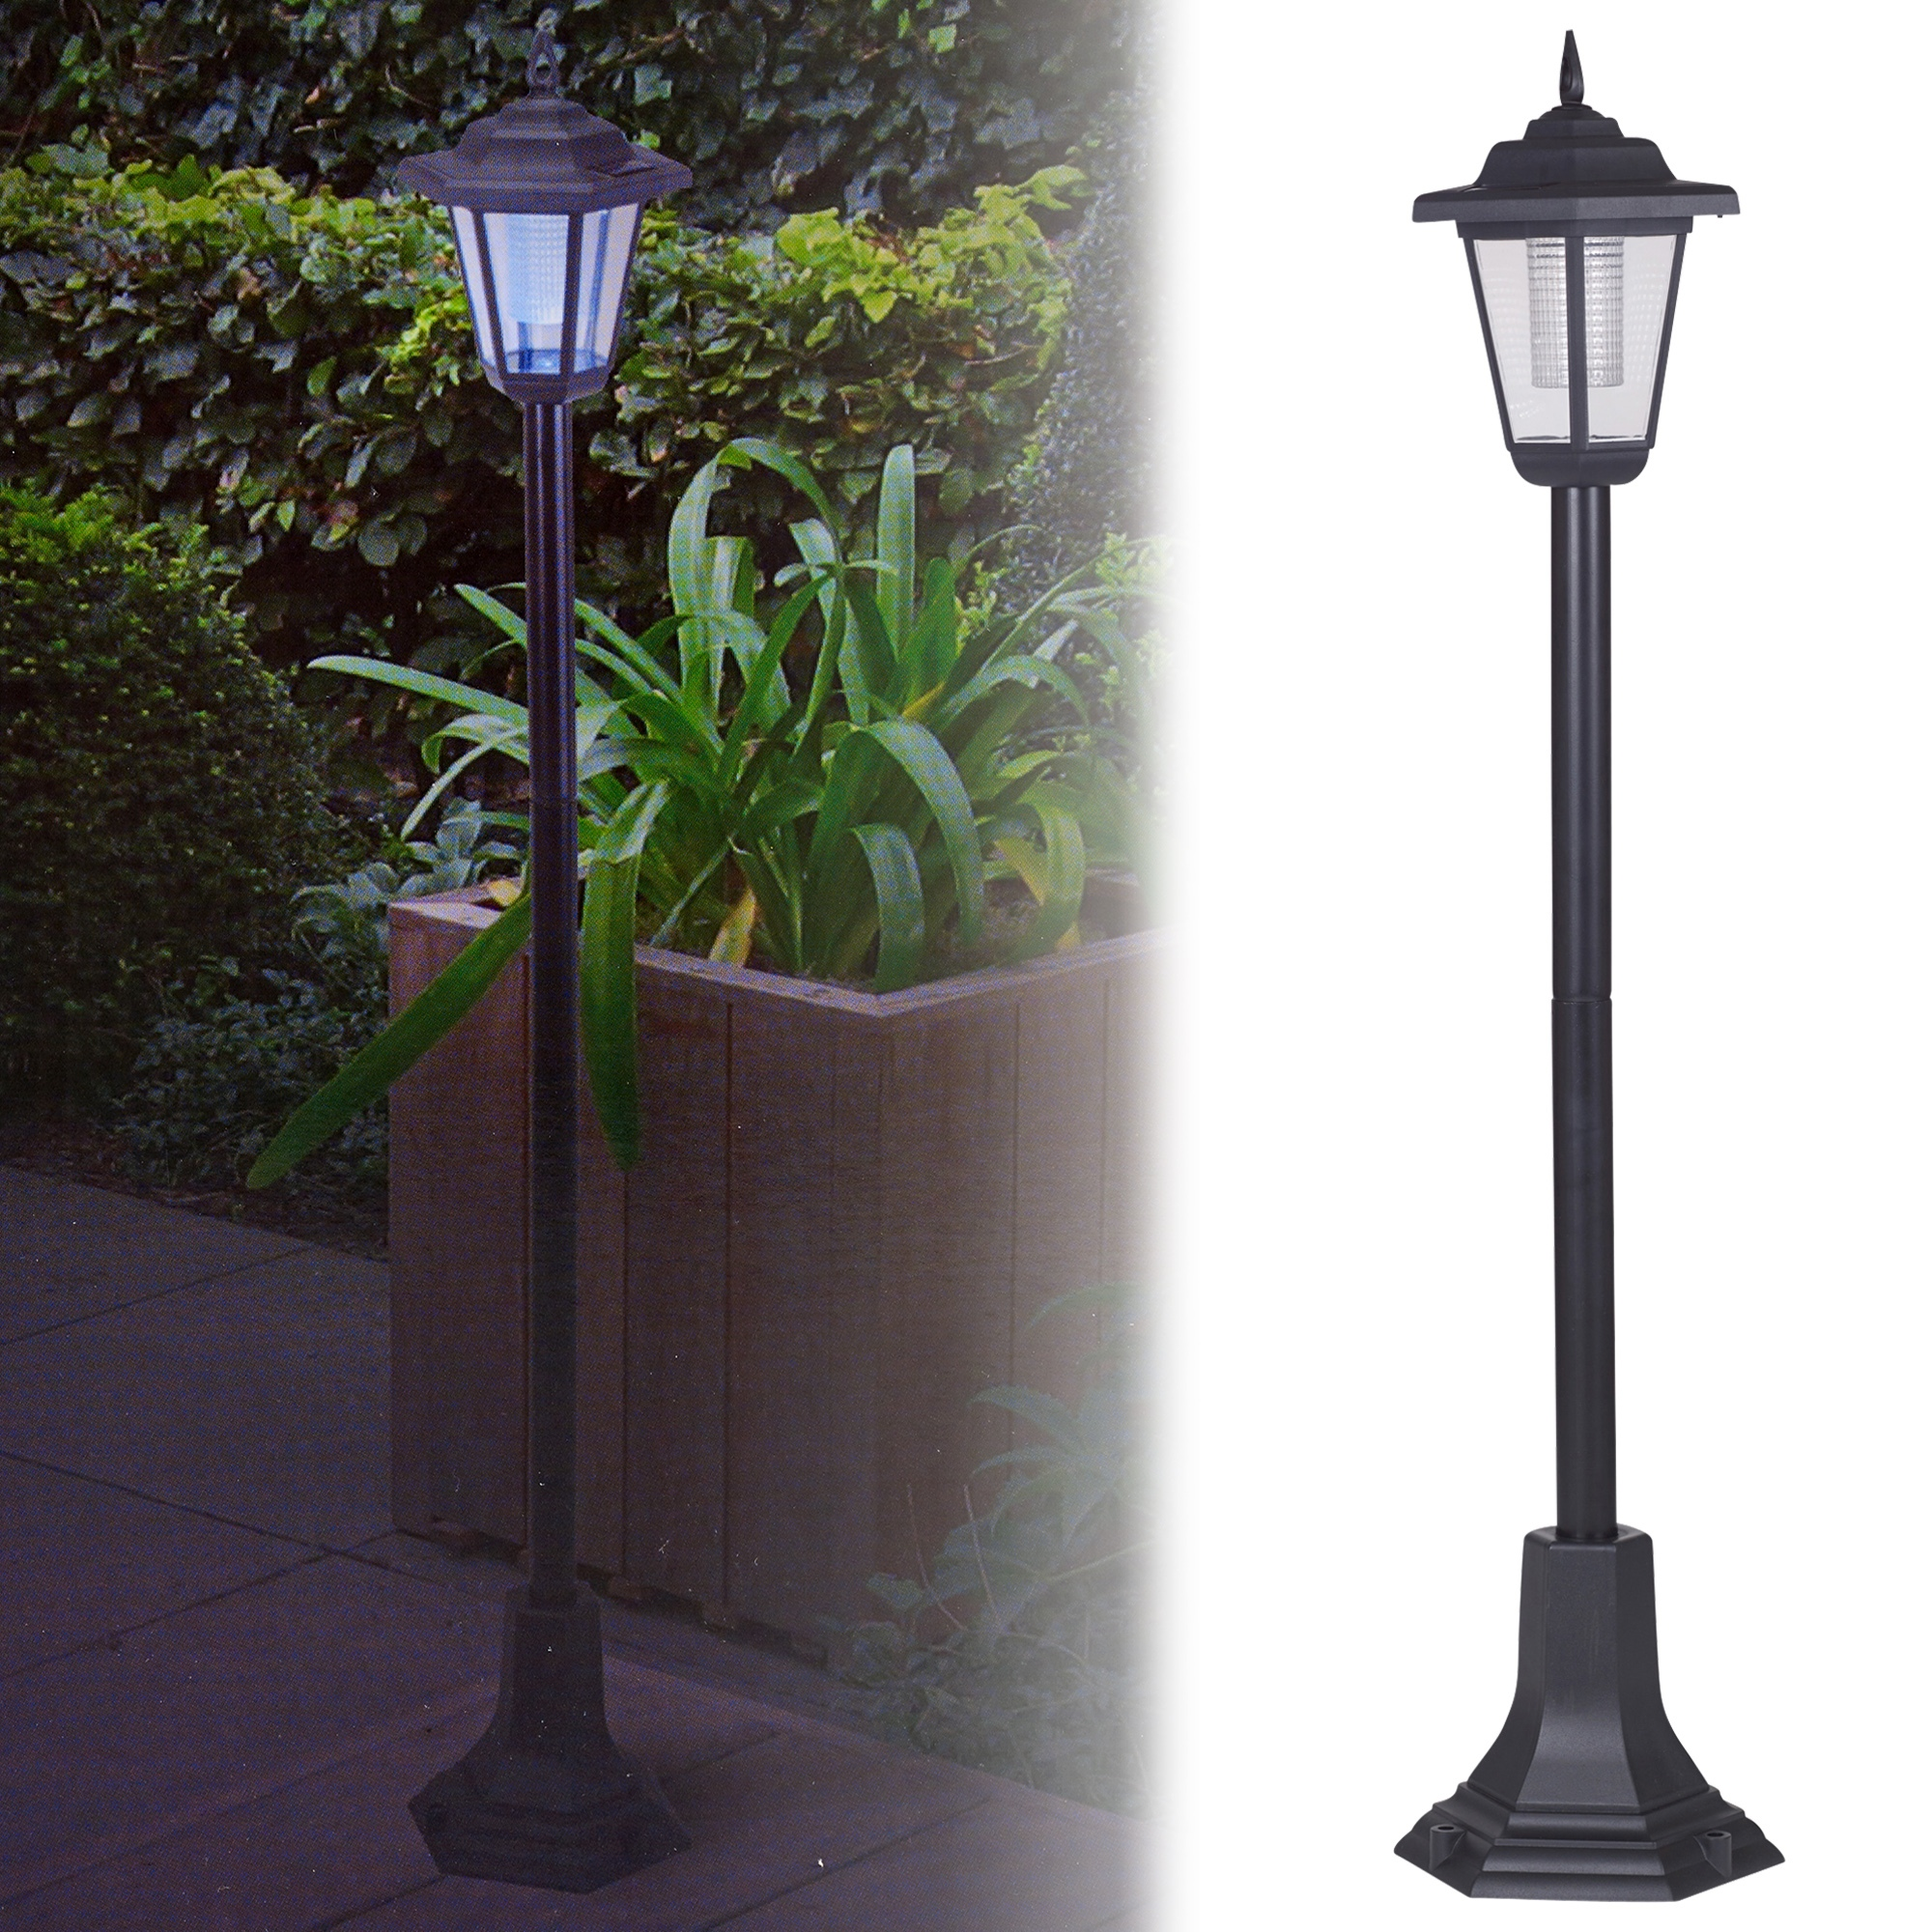 solar powered garden lights lantern lamp black led pathway driveway outdoor post ebay. Black Bedroom Furniture Sets. Home Design Ideas